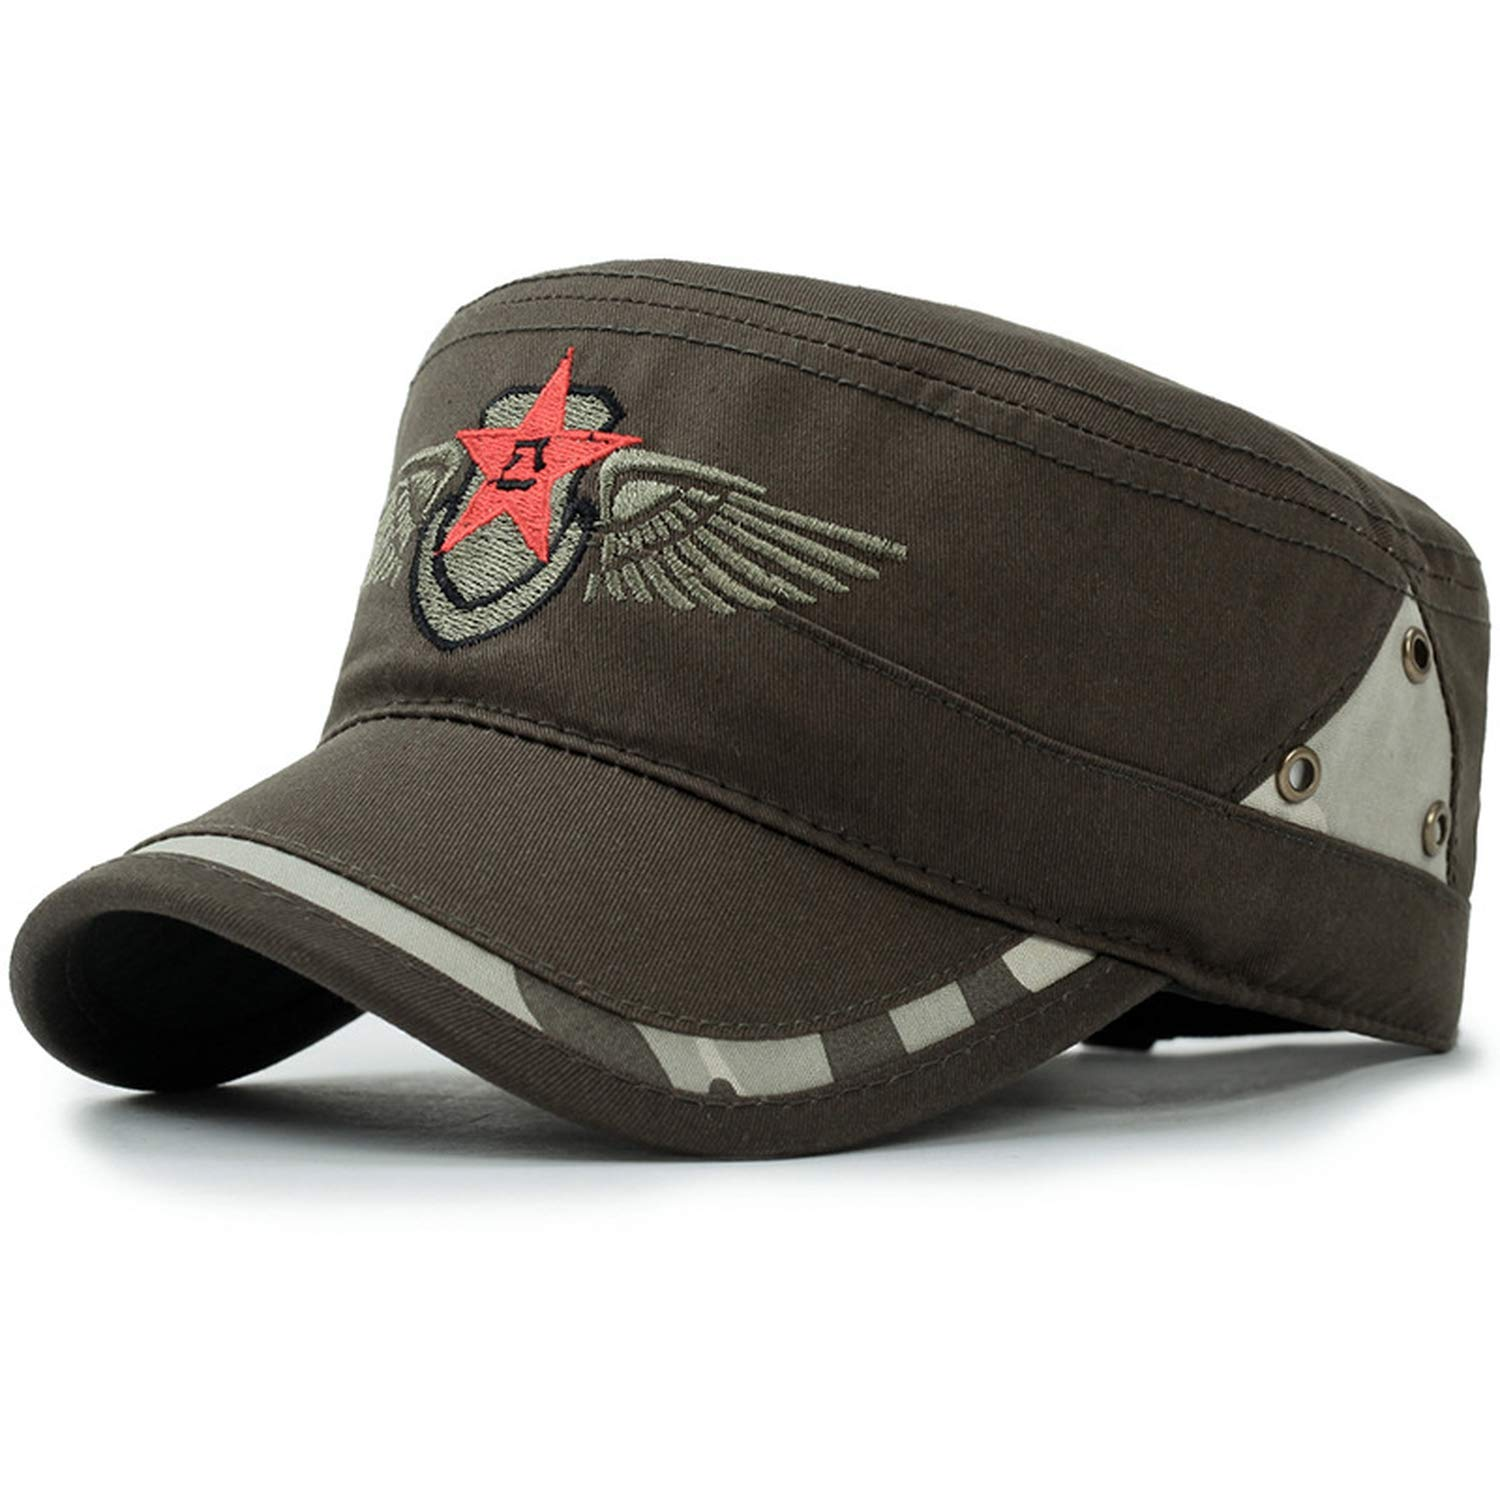 Hats & Caps Men Spring Army Gorras para Hombre Snapback Fitted Hip Hop Golf Bone Pokemon K-Pop at Amazon Womens Clothing store: